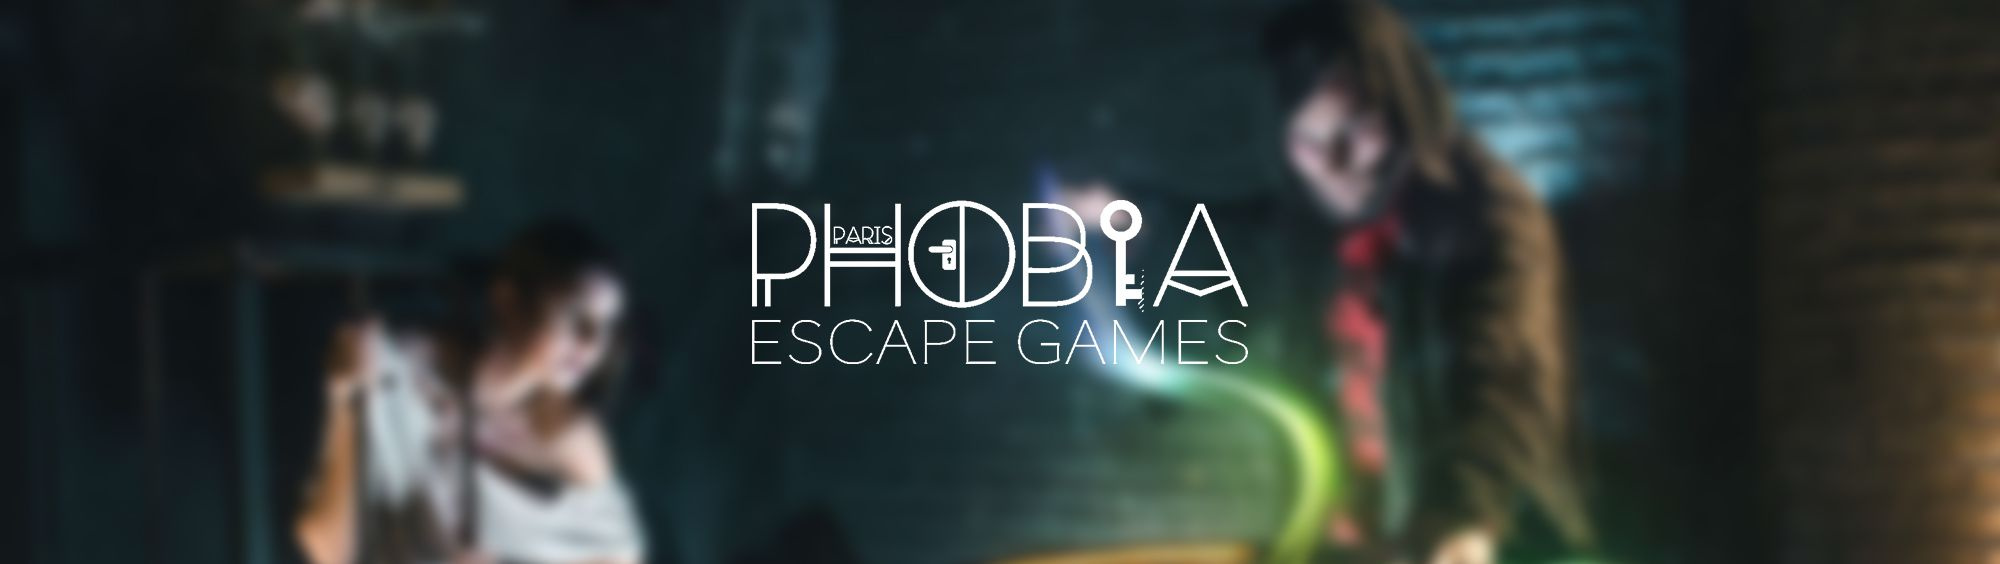 L'escape game horreur Paris Phobia escape game.jpg